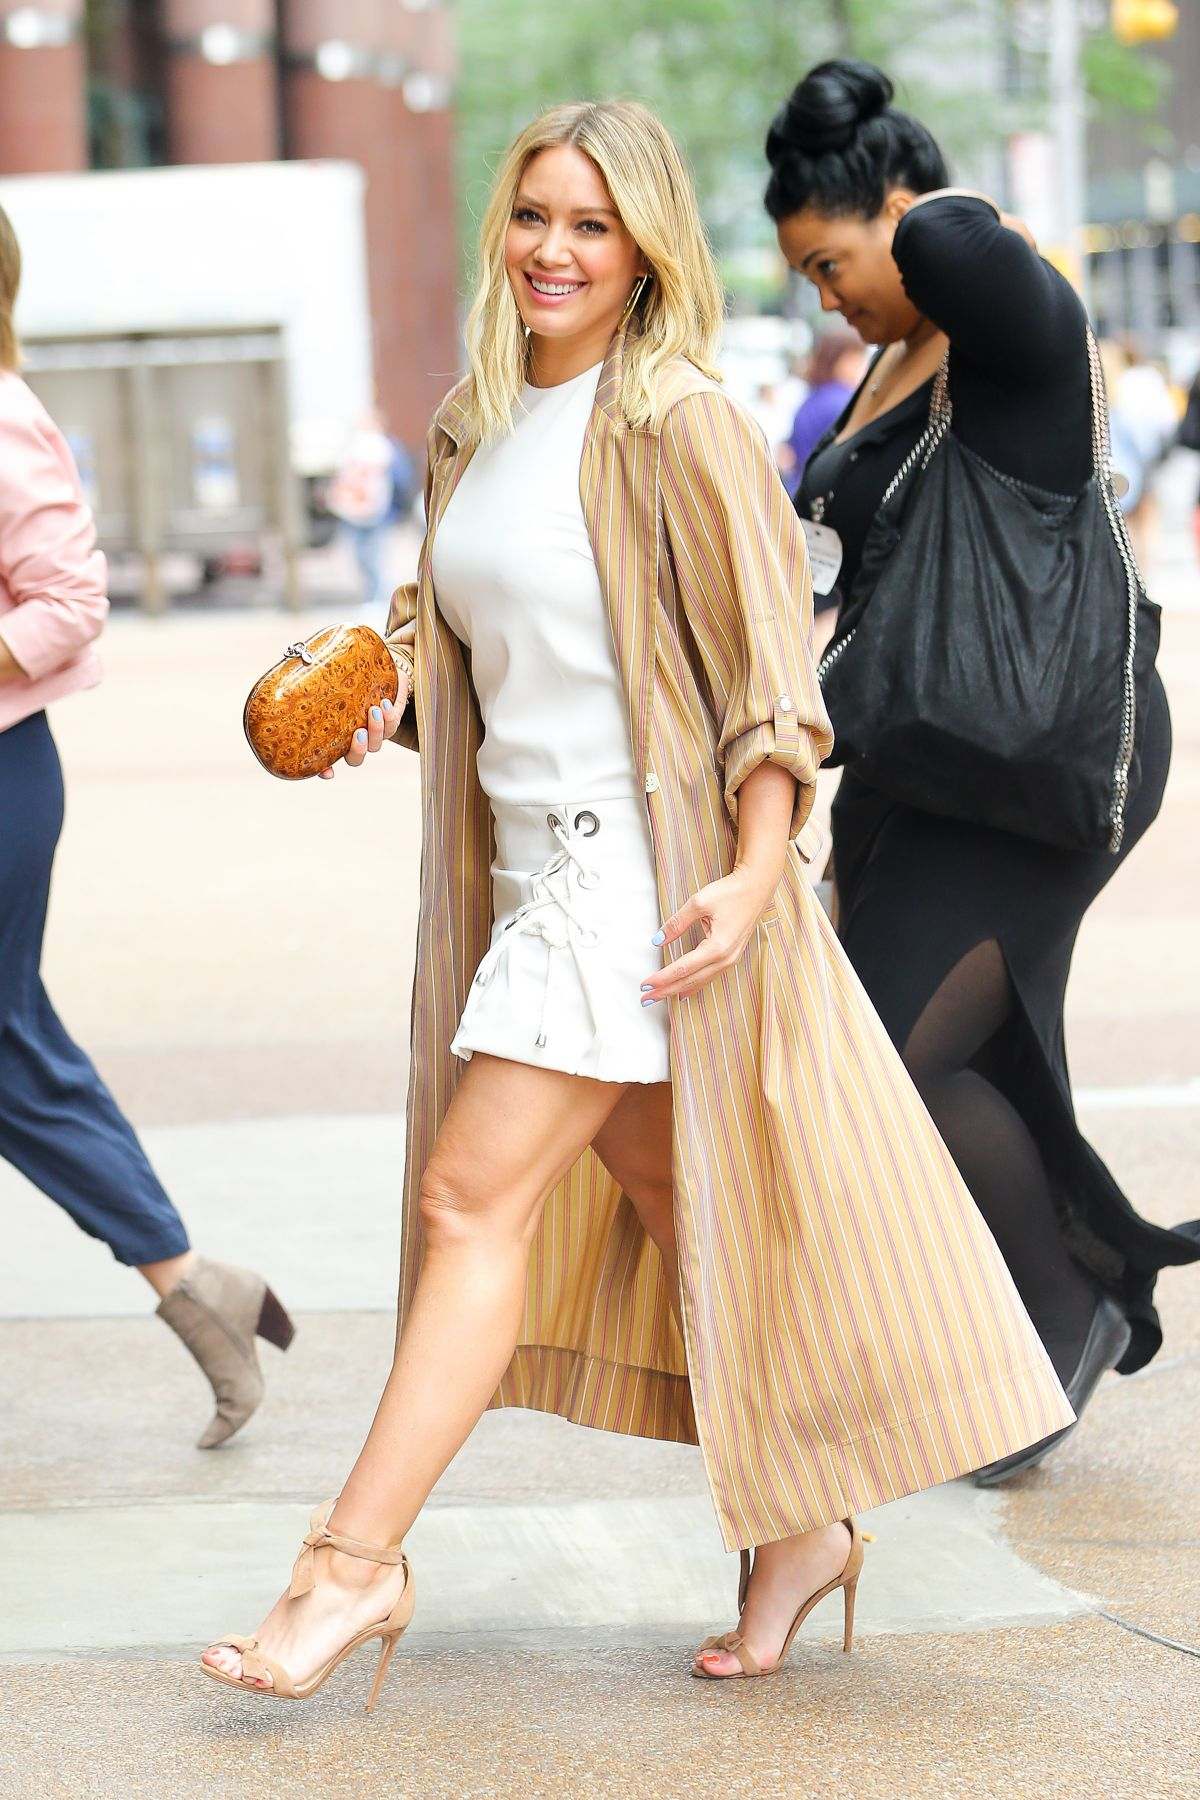 Hilary Duff Out In Nyc Celebzz